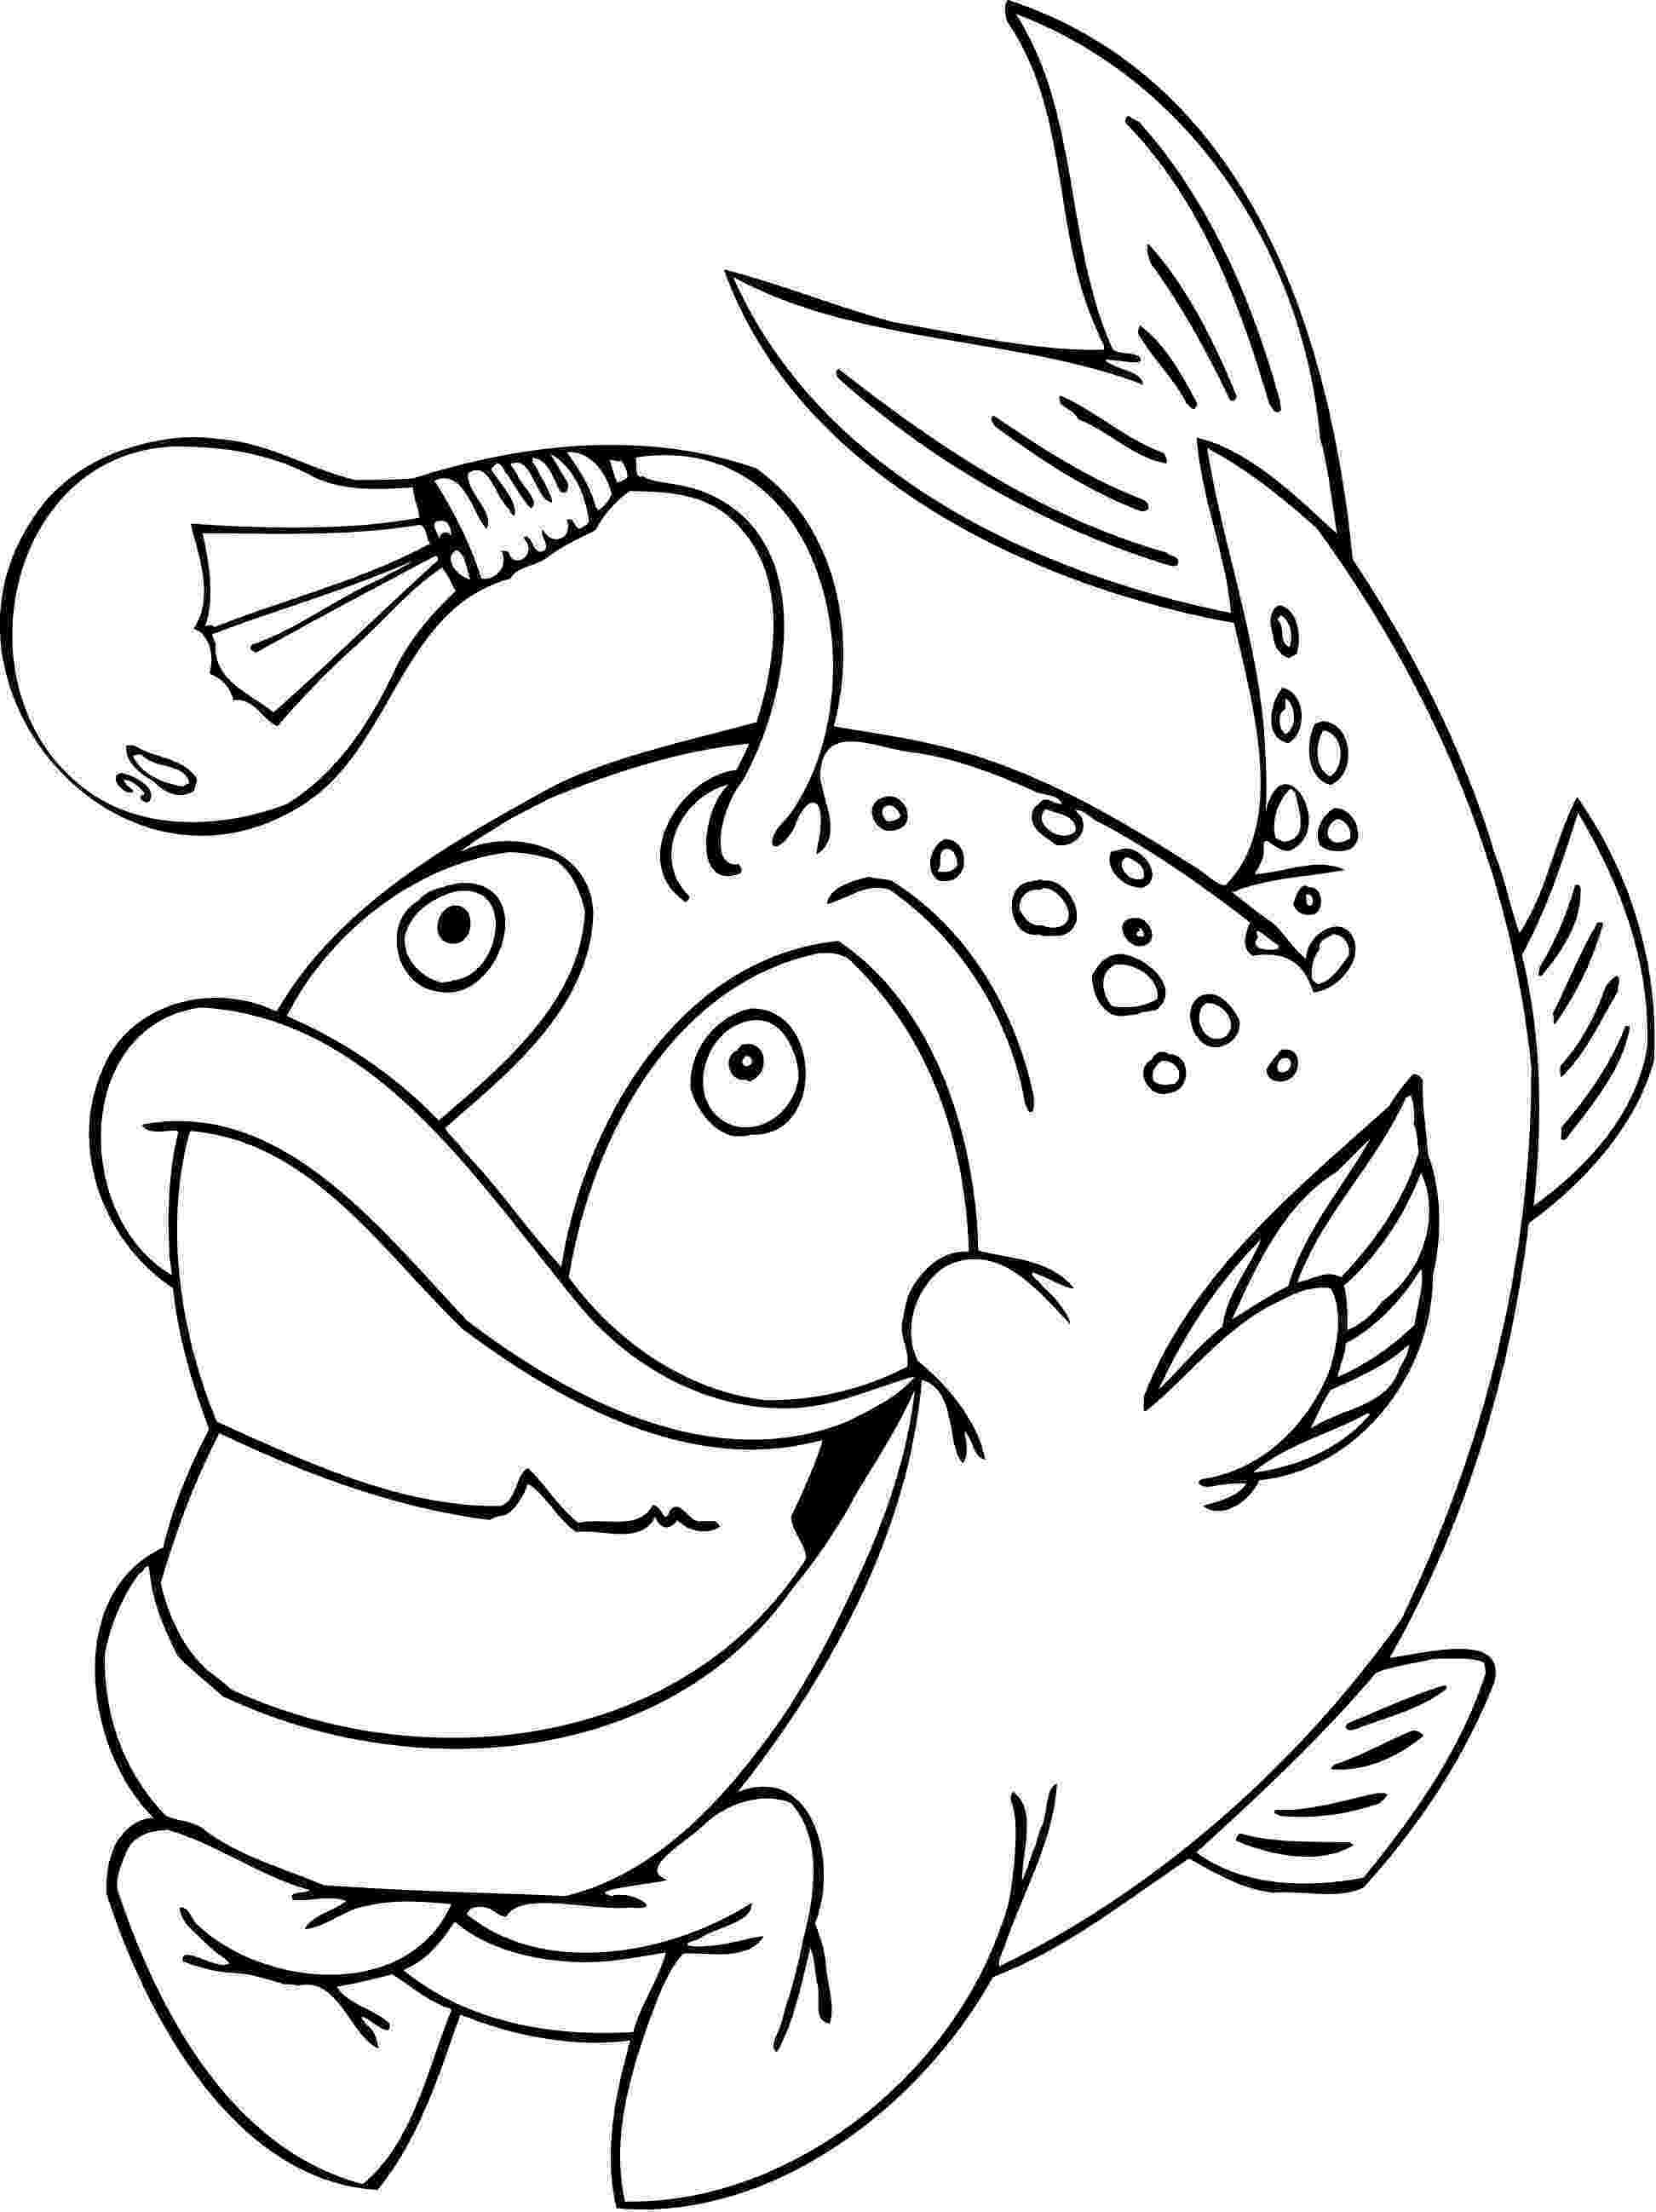 fun colouring pages for kids colouring pages abacus kids academy alberton day kids colouring for fun pages